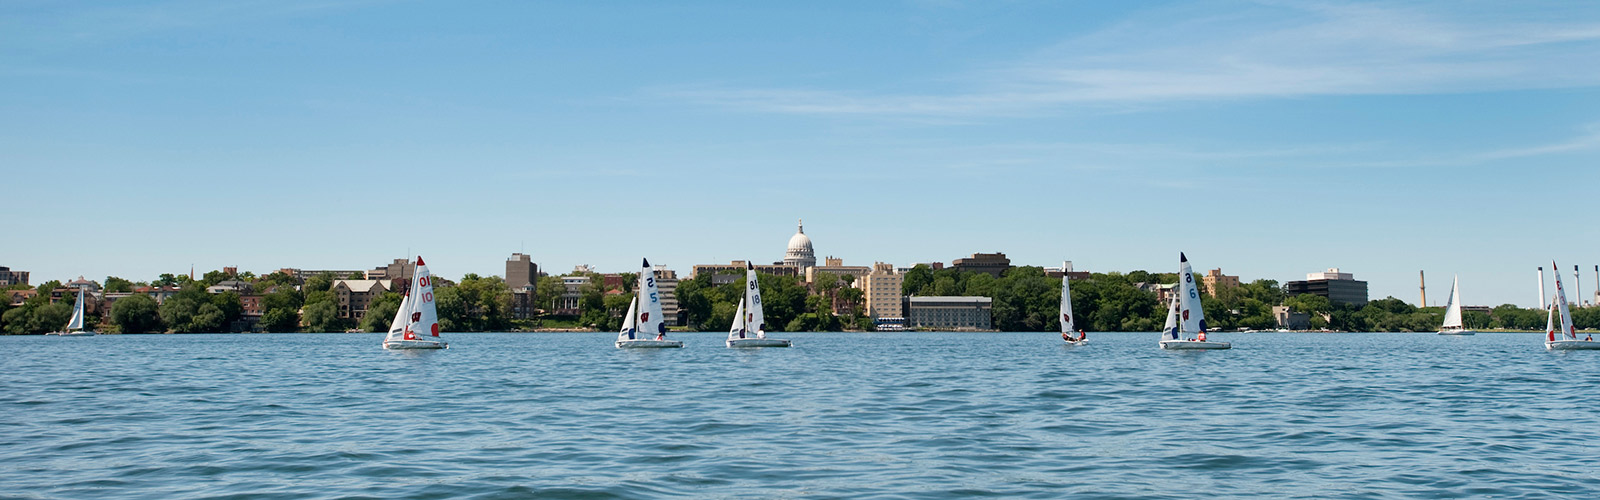 Ho的er sailboats sail on Lake Mendota with the state capitol building in the background.